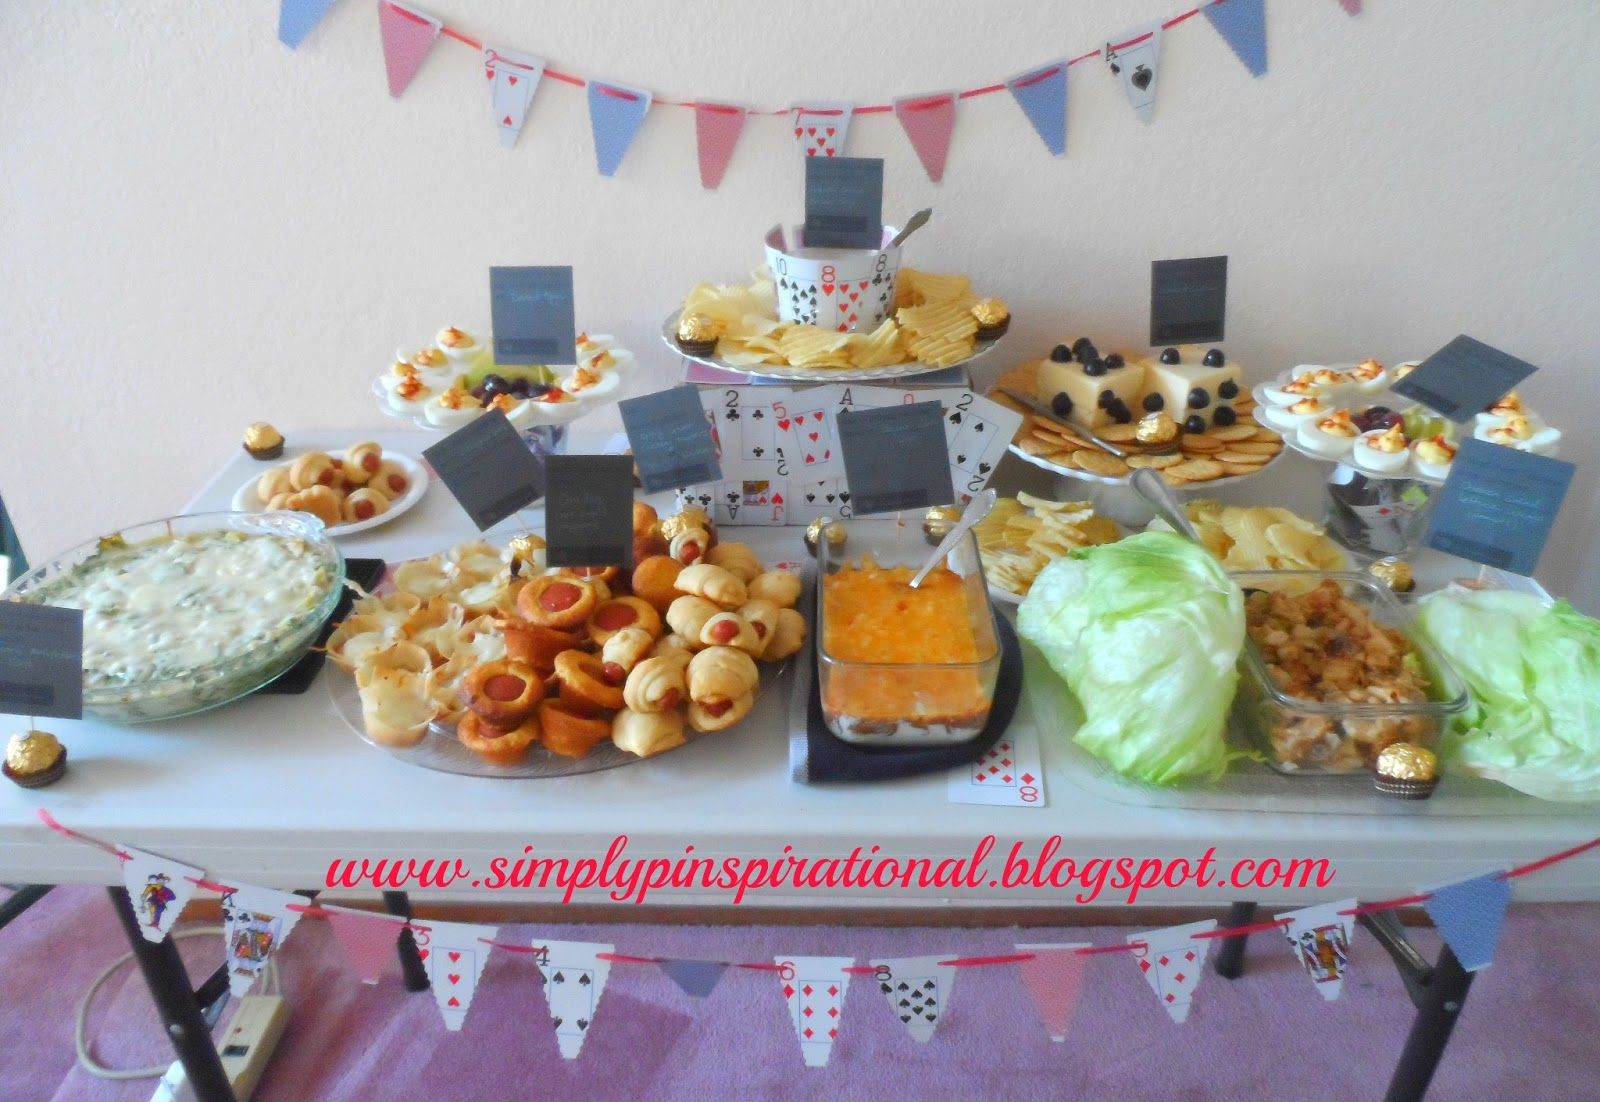 simply pinspirational: game night food table!